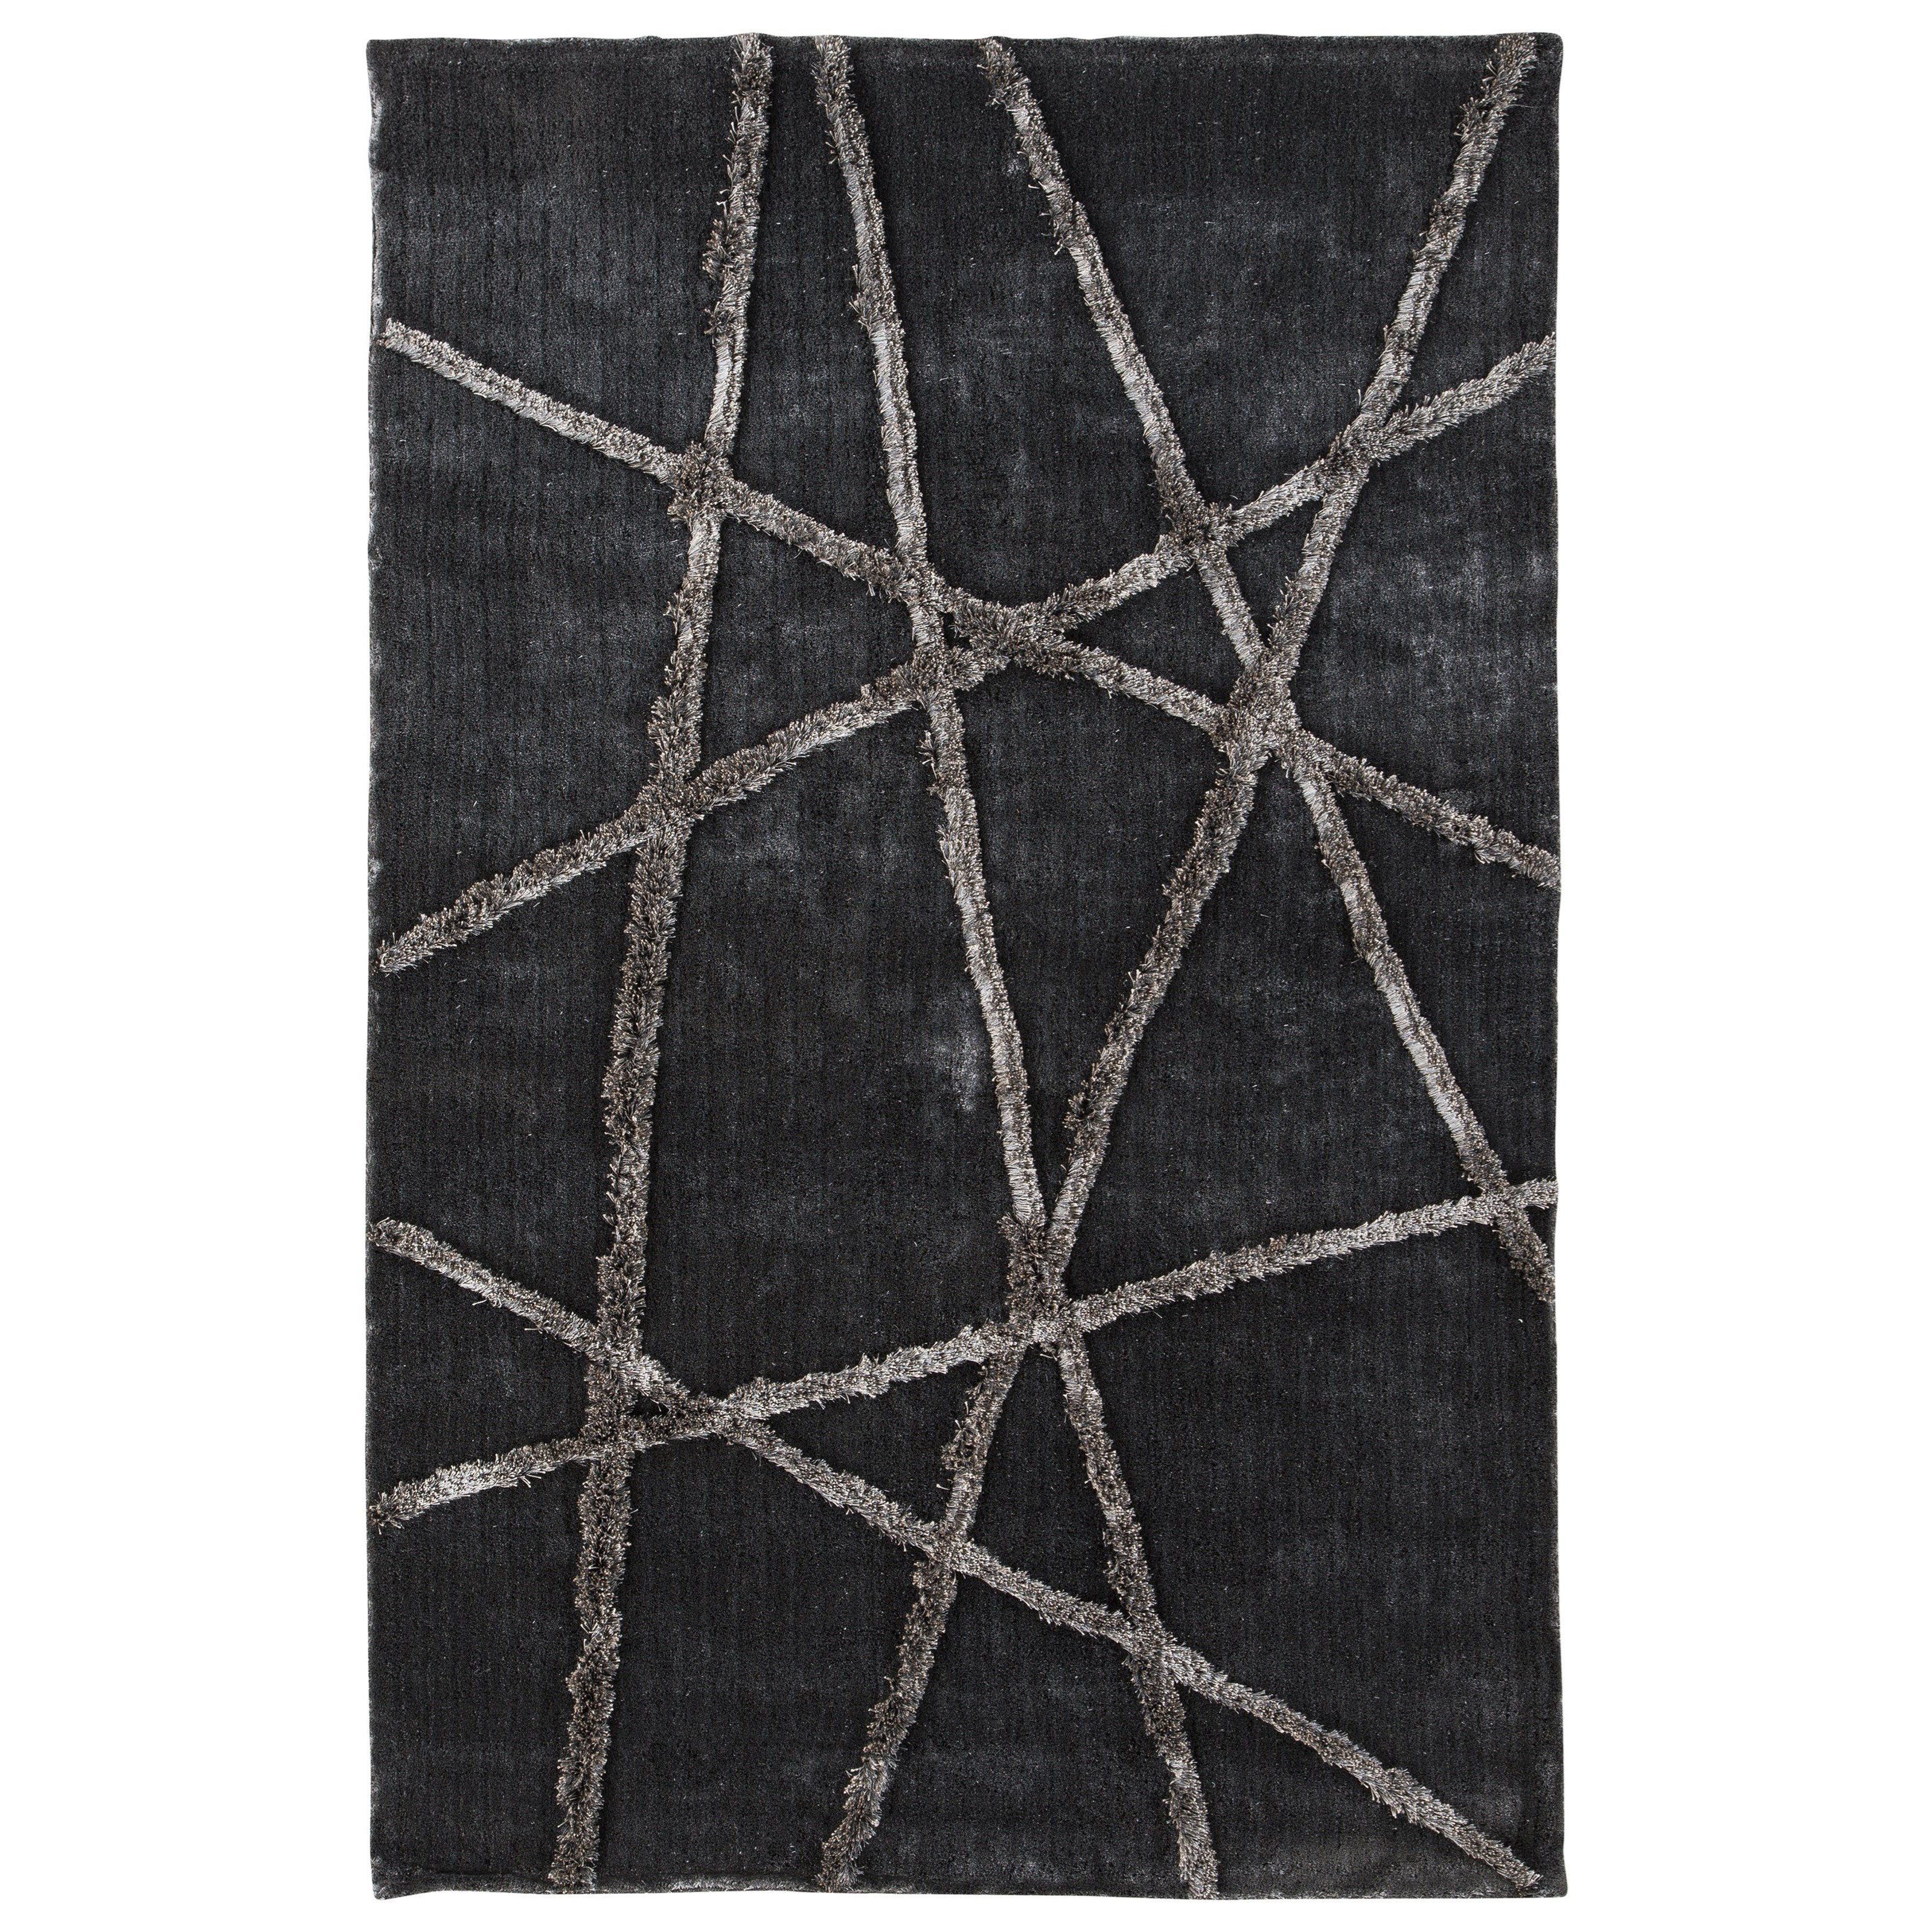 Signature Design by Ashley Contemporary Area Rugs Zorian Silver/Gray Medium Rug - Item Number: R400652